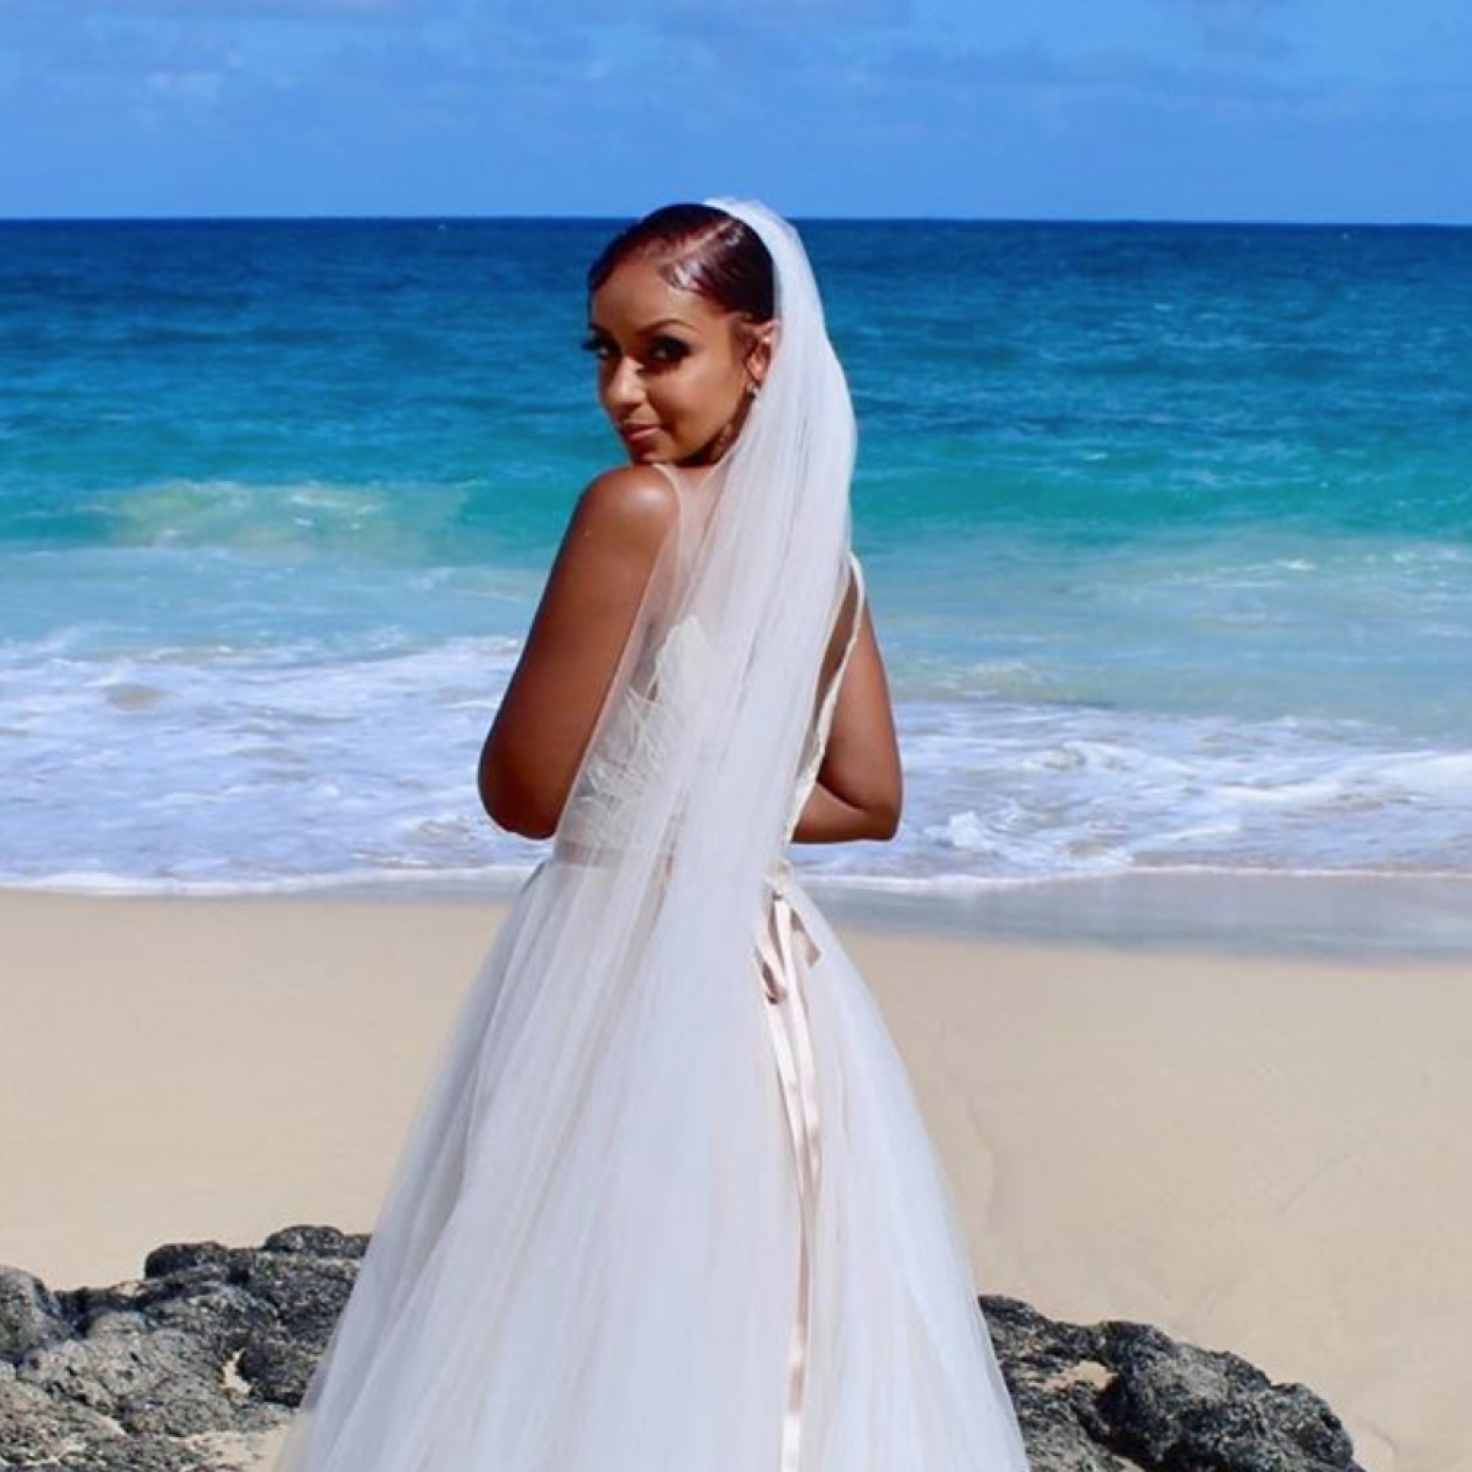 Singer Mýa Confirms She Is Married, But Keeps Us Guessing About Her New Hubby